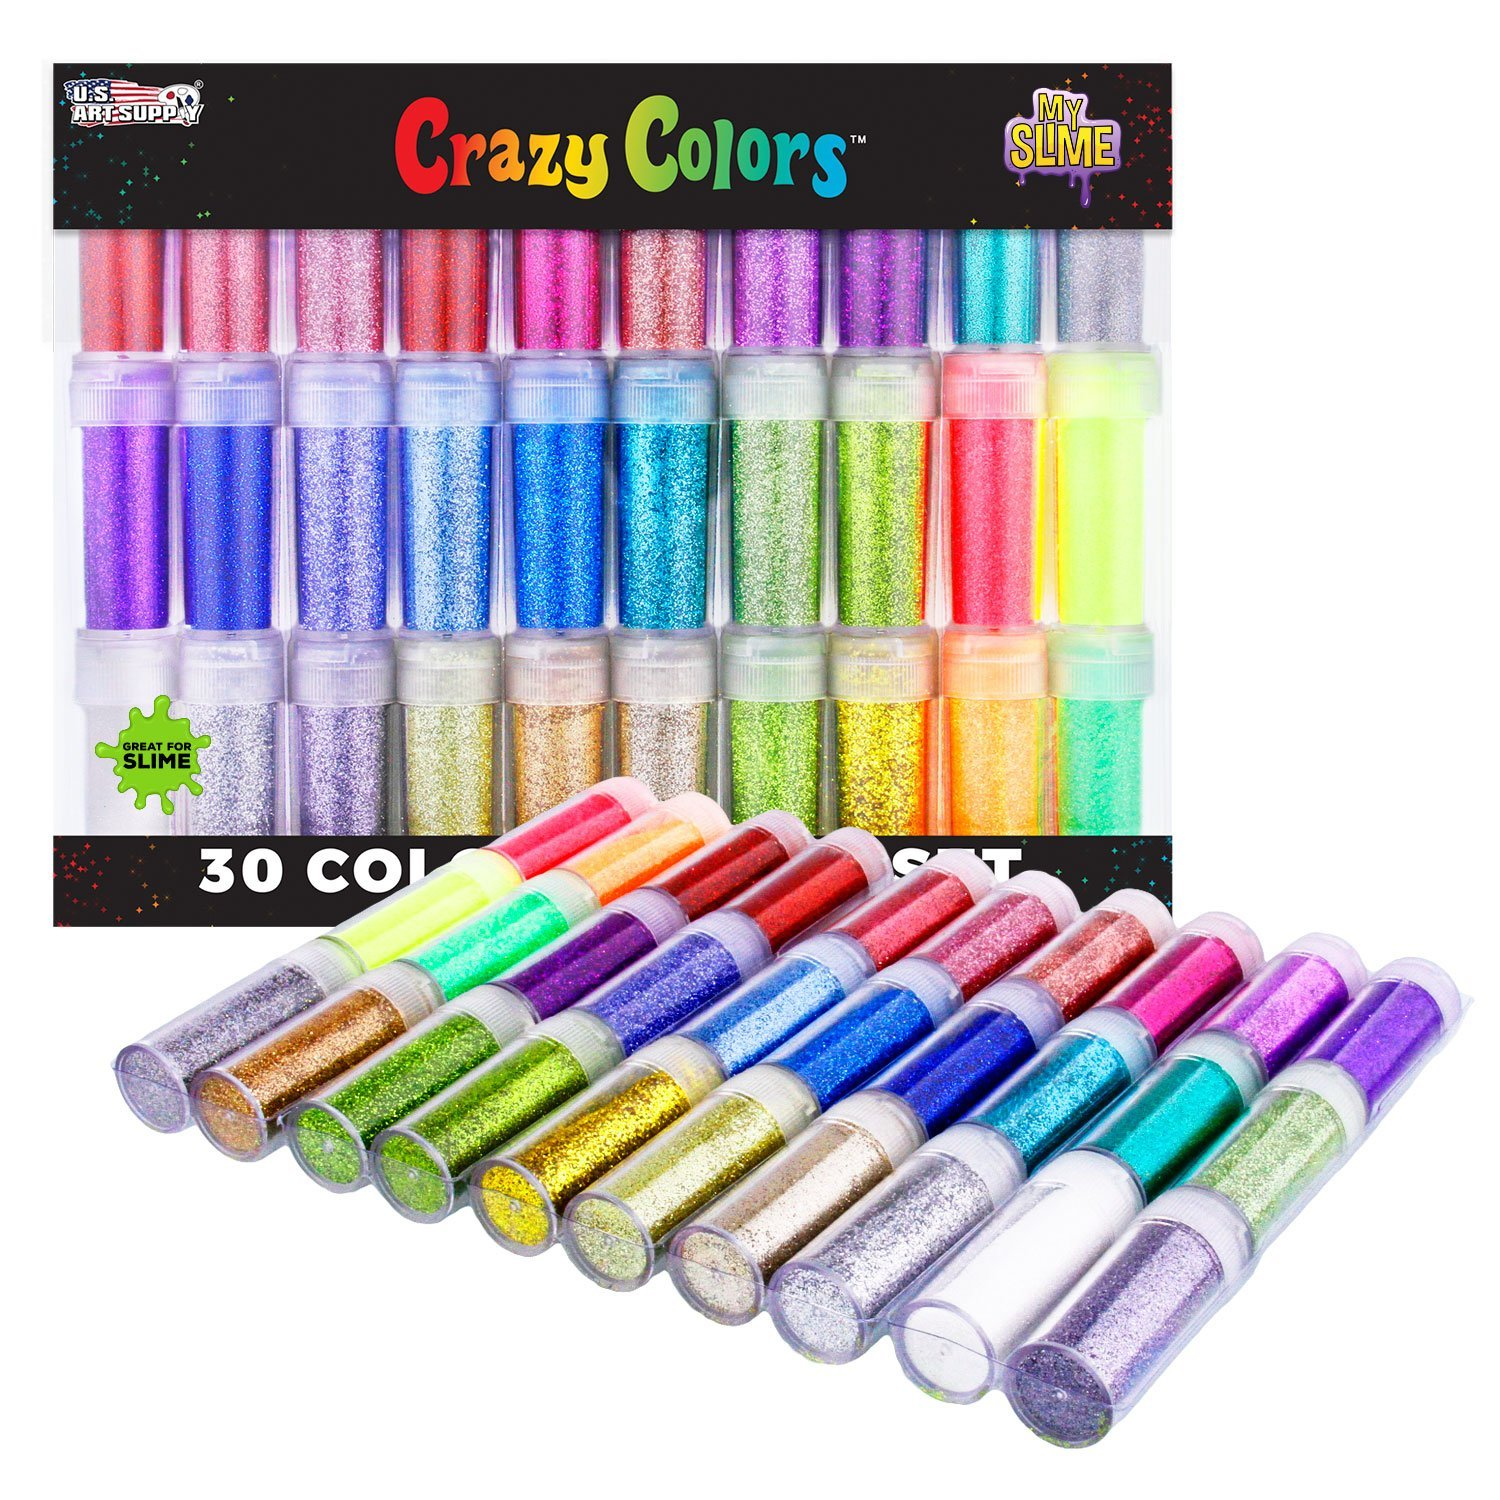 My Slime by U.S. Art Supply Crazy Colors 30 Color Deluxe Glitter Shake Jars Set Kit - Extra Fine Glitter in Large 10 Gram Bottles - Arts, Crafts, Scrapbooking, Body, Slime, Party, Holiday Crafts